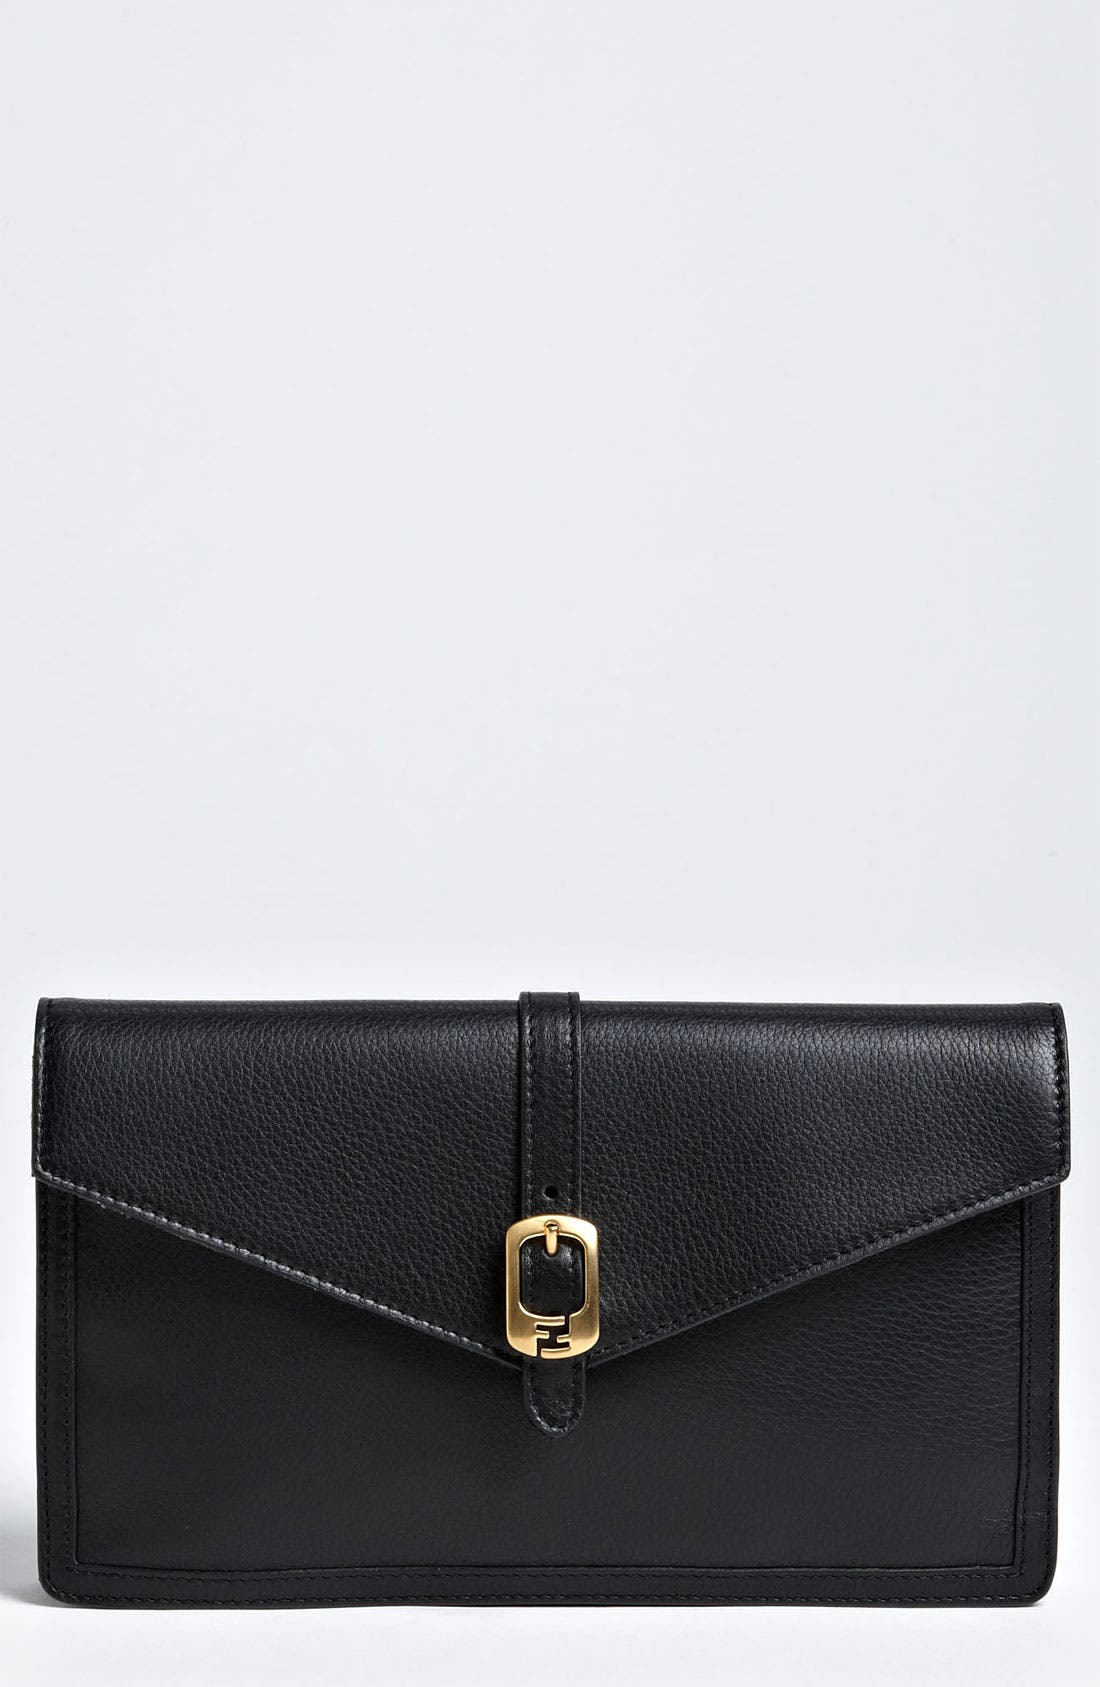 Alternate Image 1 Selected - Fendi Leather Envelope Clutch